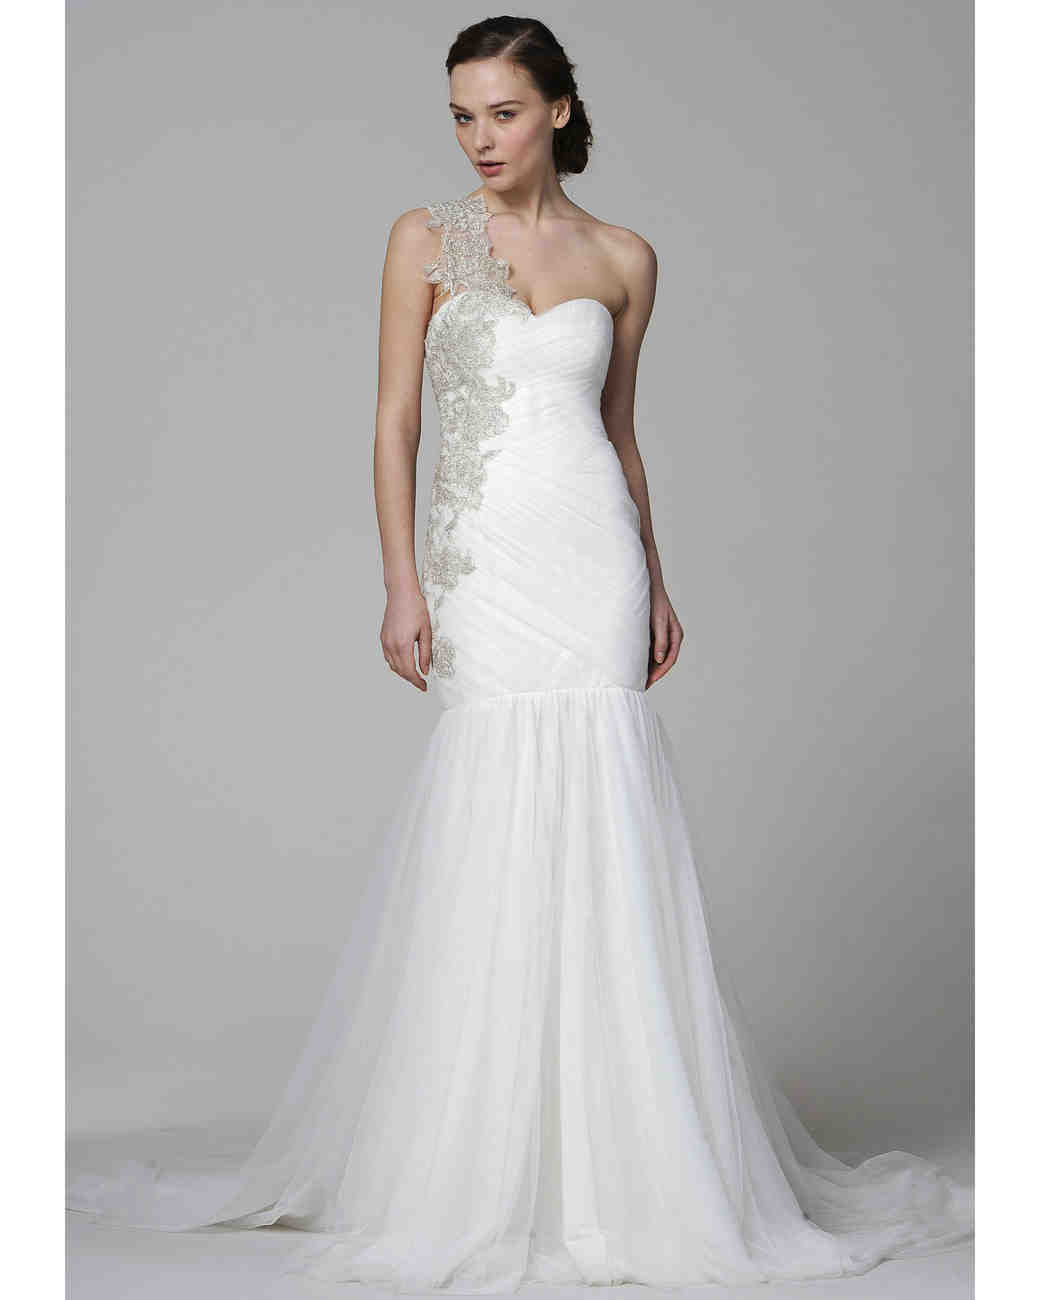 One Shoulder Wedding Dresses, Spring 2013 Bridal Fashion